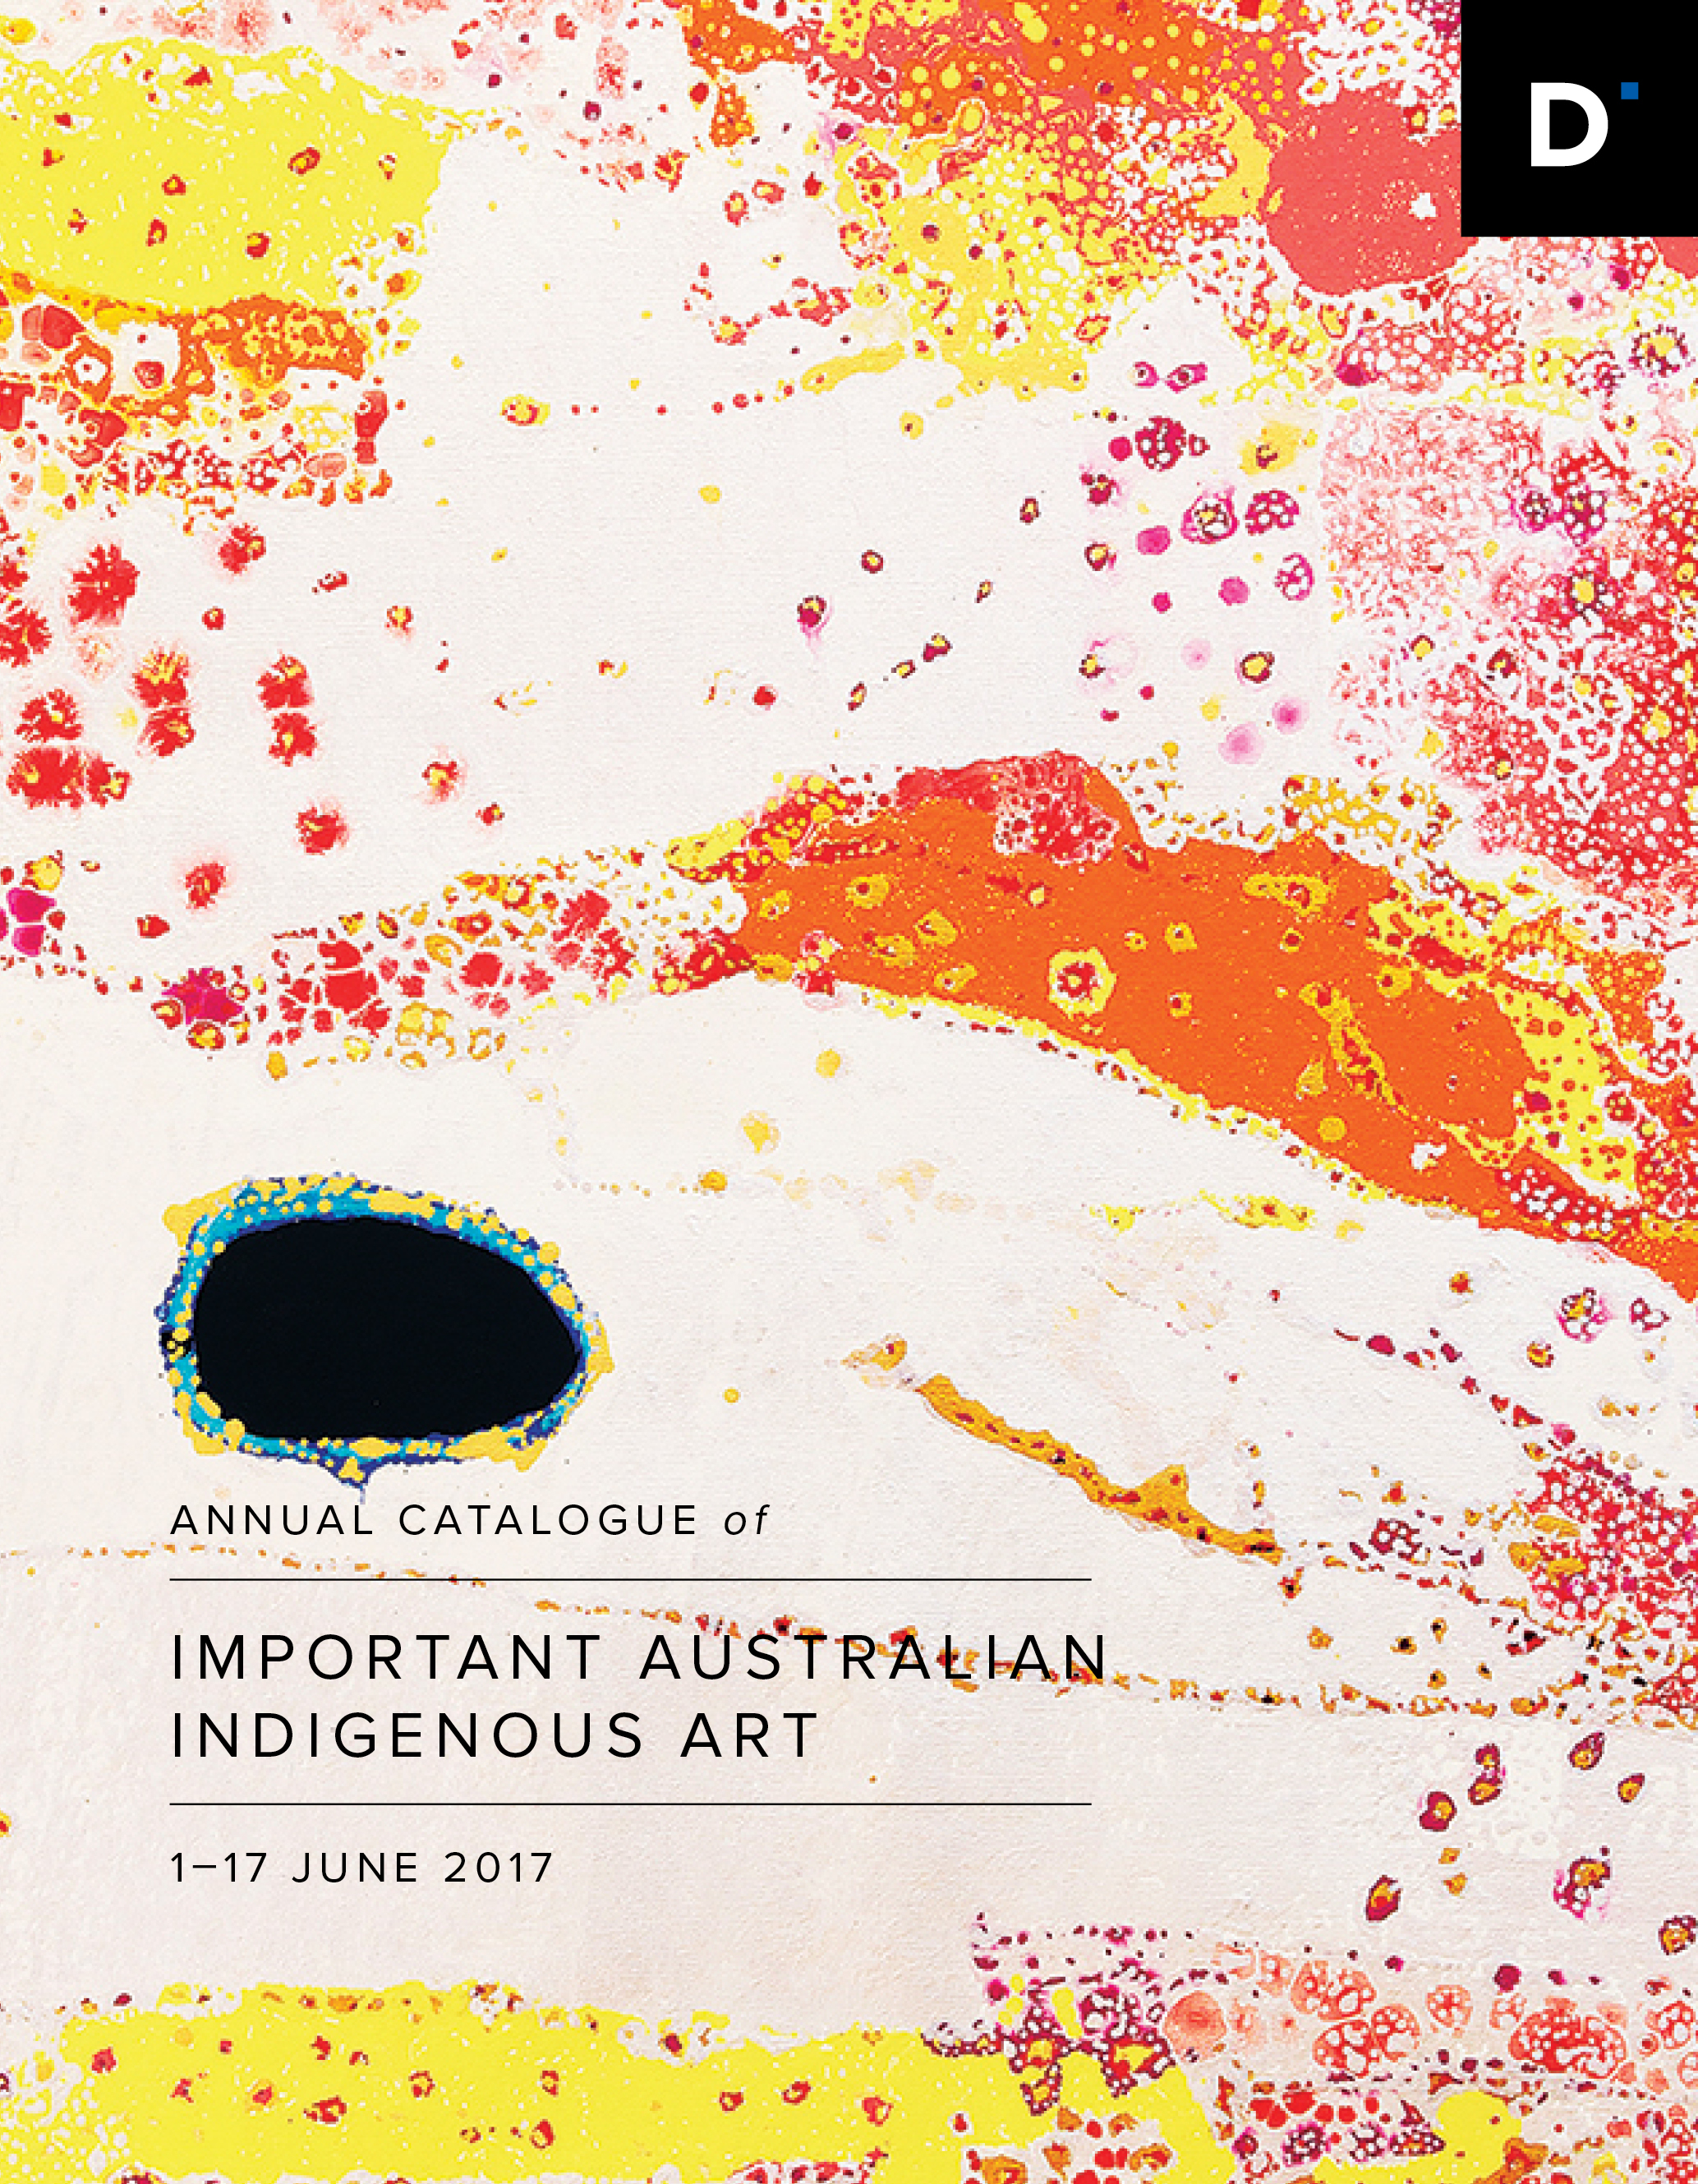 Australian Indigenous art exhibition 2017